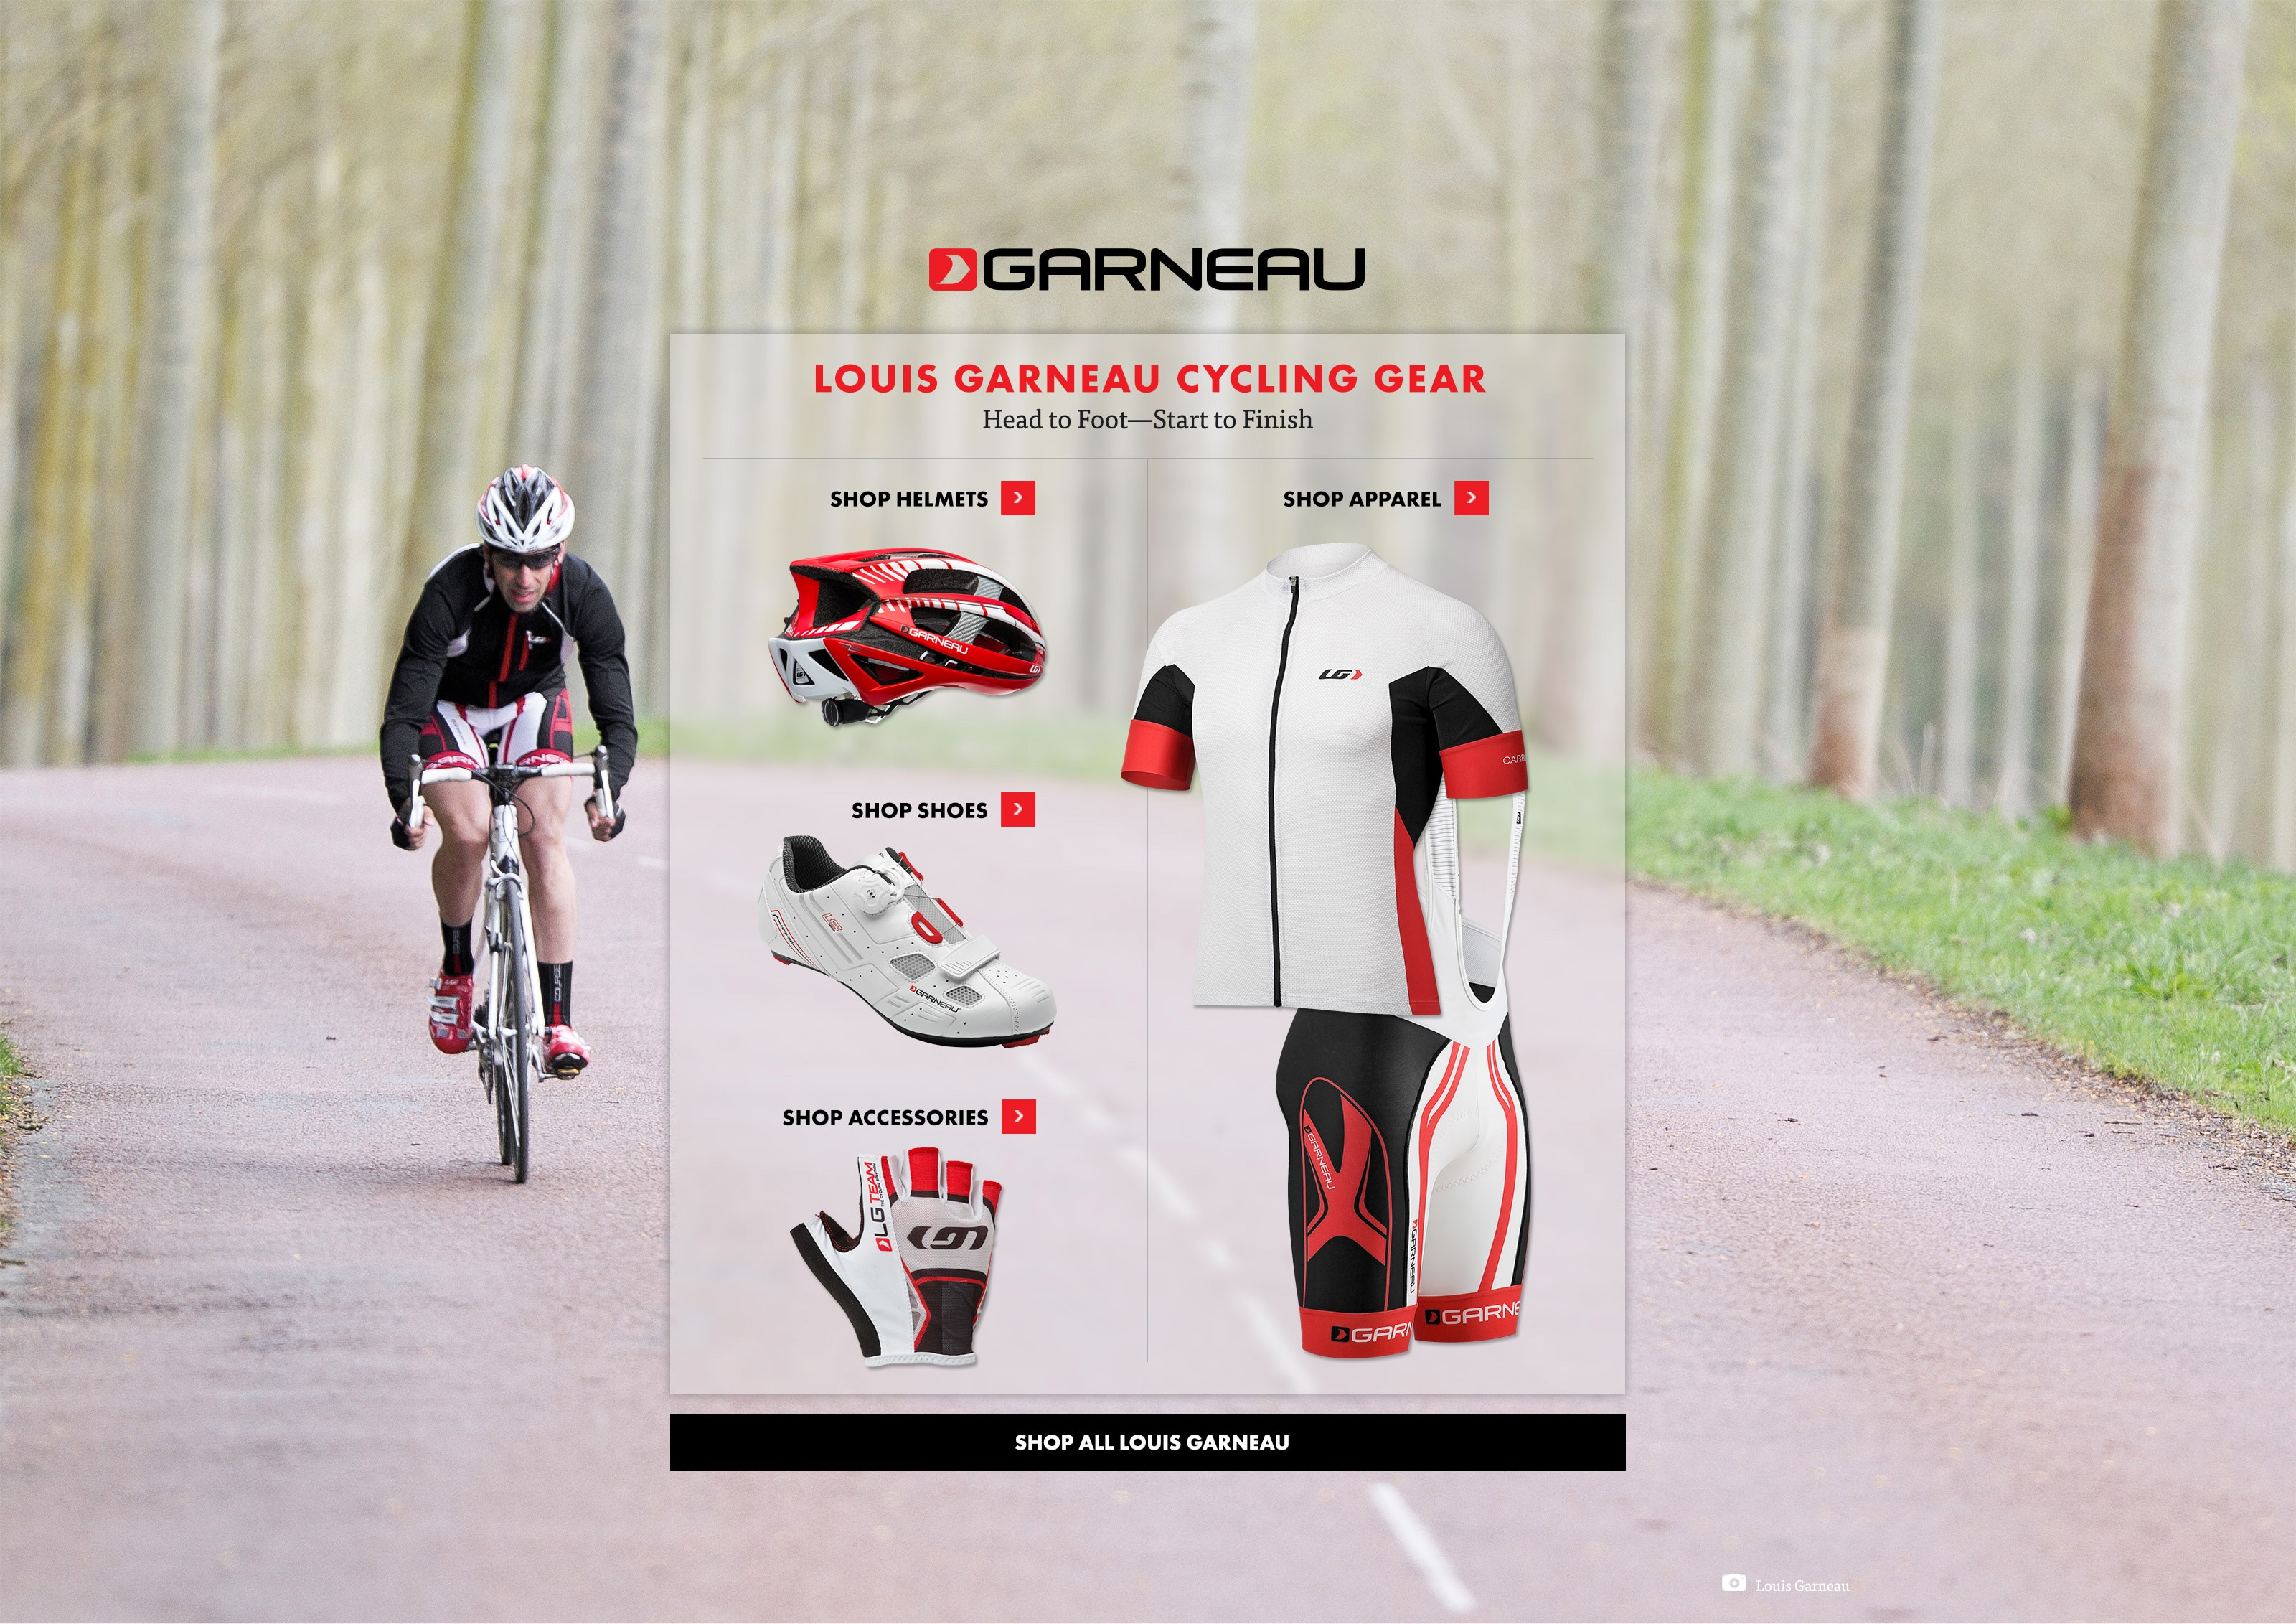 Louis Garneau Cycling Gear